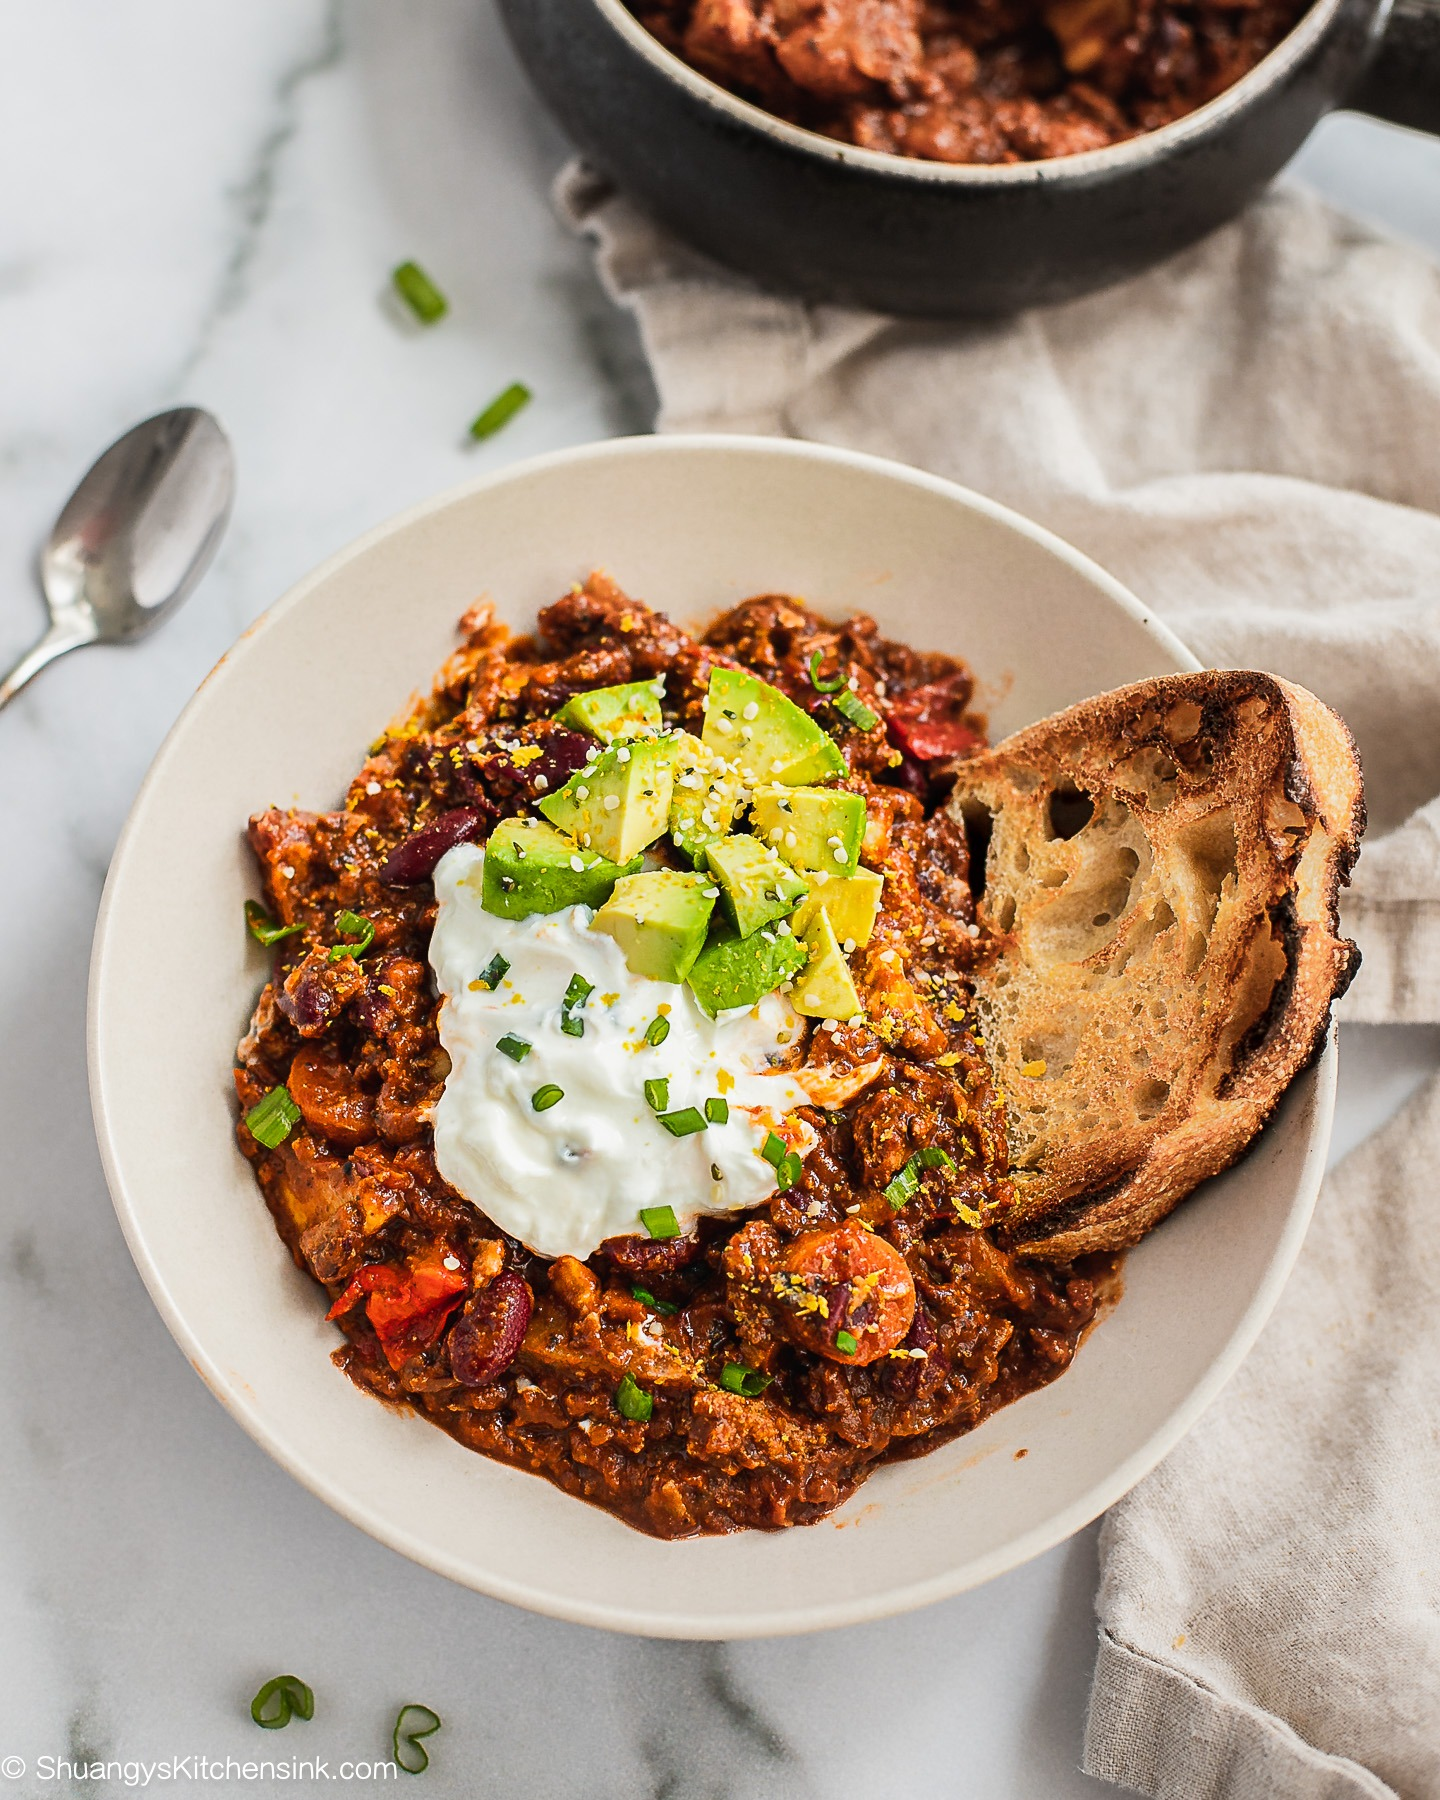 A bowl of sweet potato chili Topped with avocado, yogurt and scallions. There is a piece of toasted crusty bread on the side of the bowl.